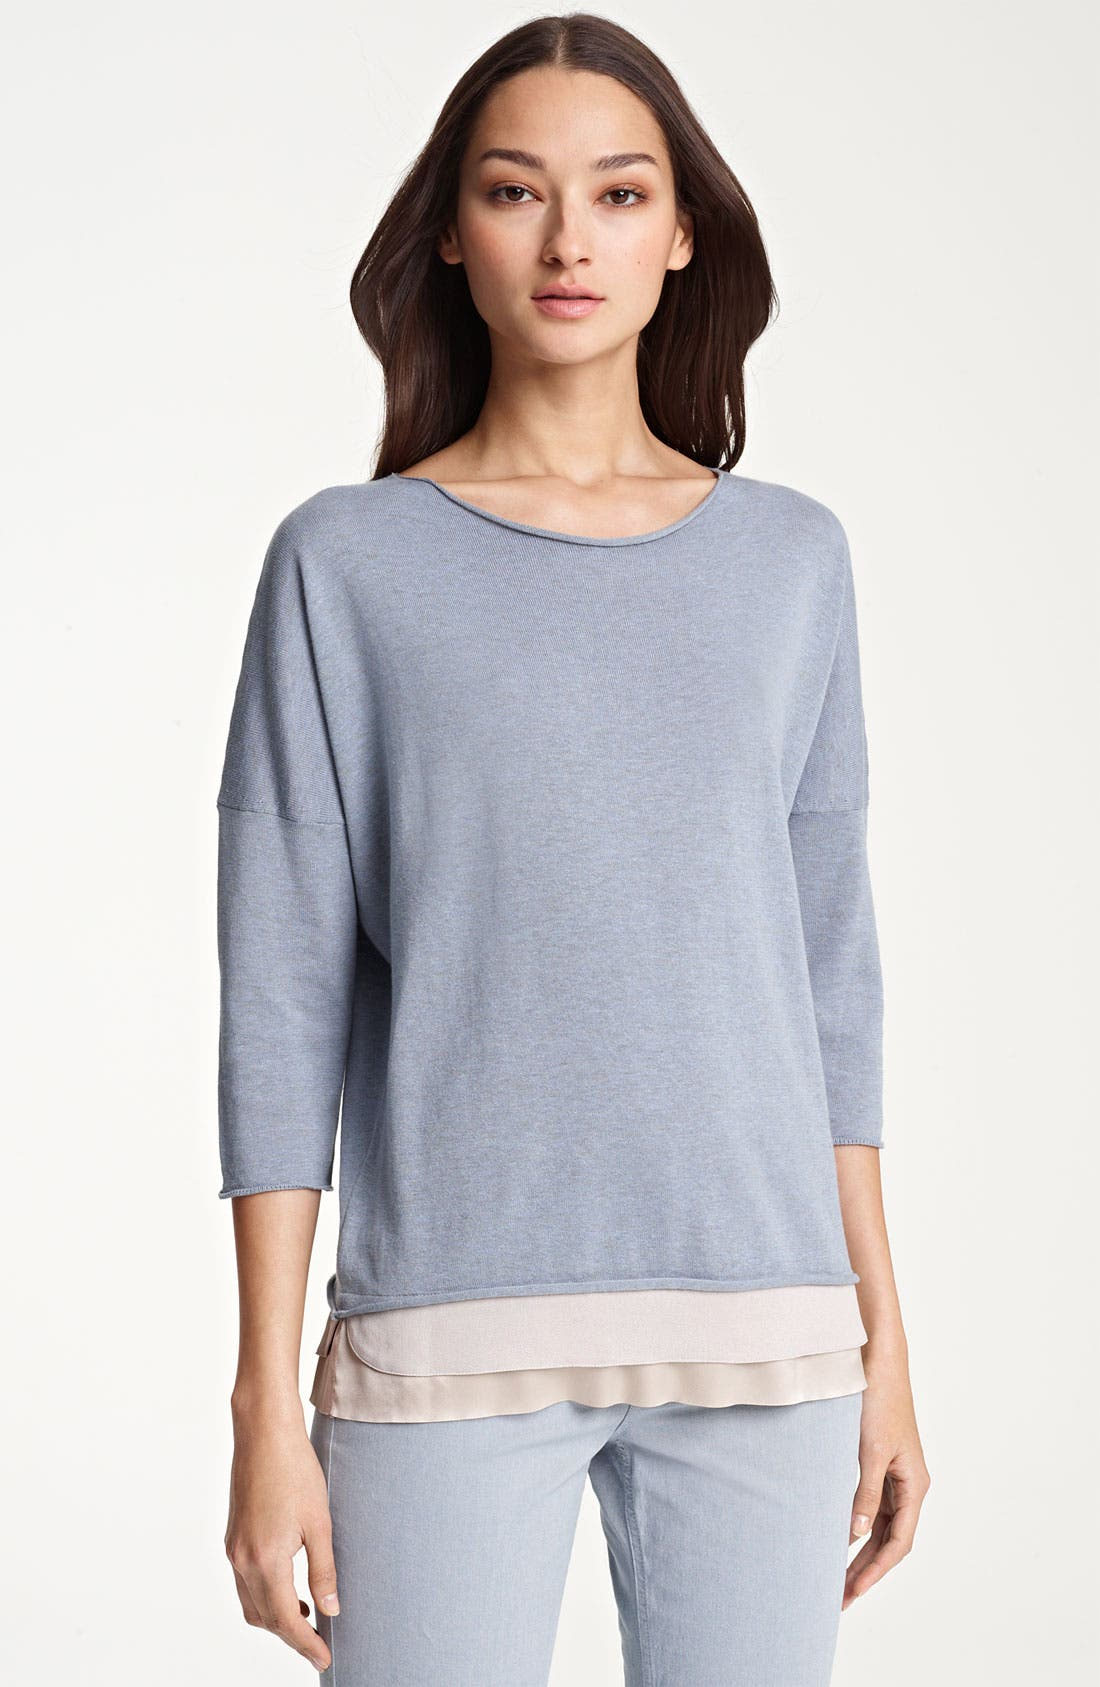 Alternate Image 1 Selected - Fabiana Filippi Crepe Hem Knit Top